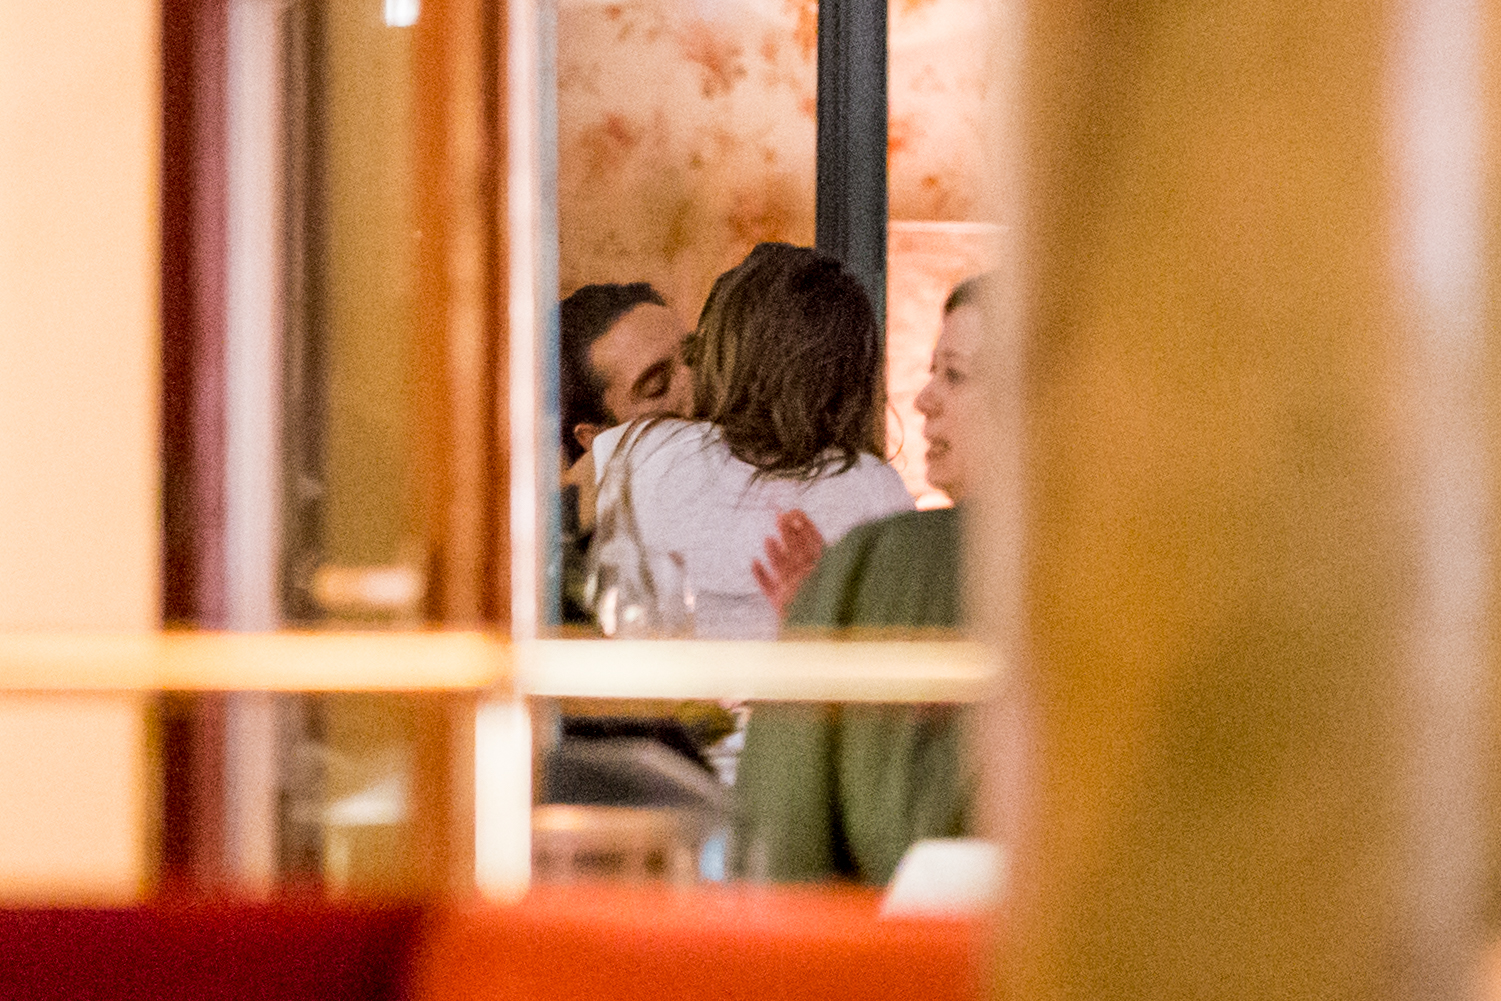 EXCLUSIVE: **PREMIUM EXCLUSIVE RATES APPLY** Heidi Klum and Tom Kaulitz at the Borchardt Restaurant in Berlin, Germany. The supermodel and the musician decided to dine at the Borchardt Restaurant on Sunday night.In the restaurant they kissed again and again and exchange caresses. When they left the restaurant, they came out in good spirits with Tom's brother Bill Kaulitz and fashion designer Michael Michalski <P> Pictured: Heidi Klum, Tom Kaulitz <B>Ref: SPL1689442  300418   EXCLUSIVE</B><BR/> Picture by: Splash News<BR/> </P><P> <B>Splash News and Pictures</B><BR/> Los Angeles:310-821-2666<BR/> New York:212-619-2666<BR/> London:870-934-2666<BR/> <span id=